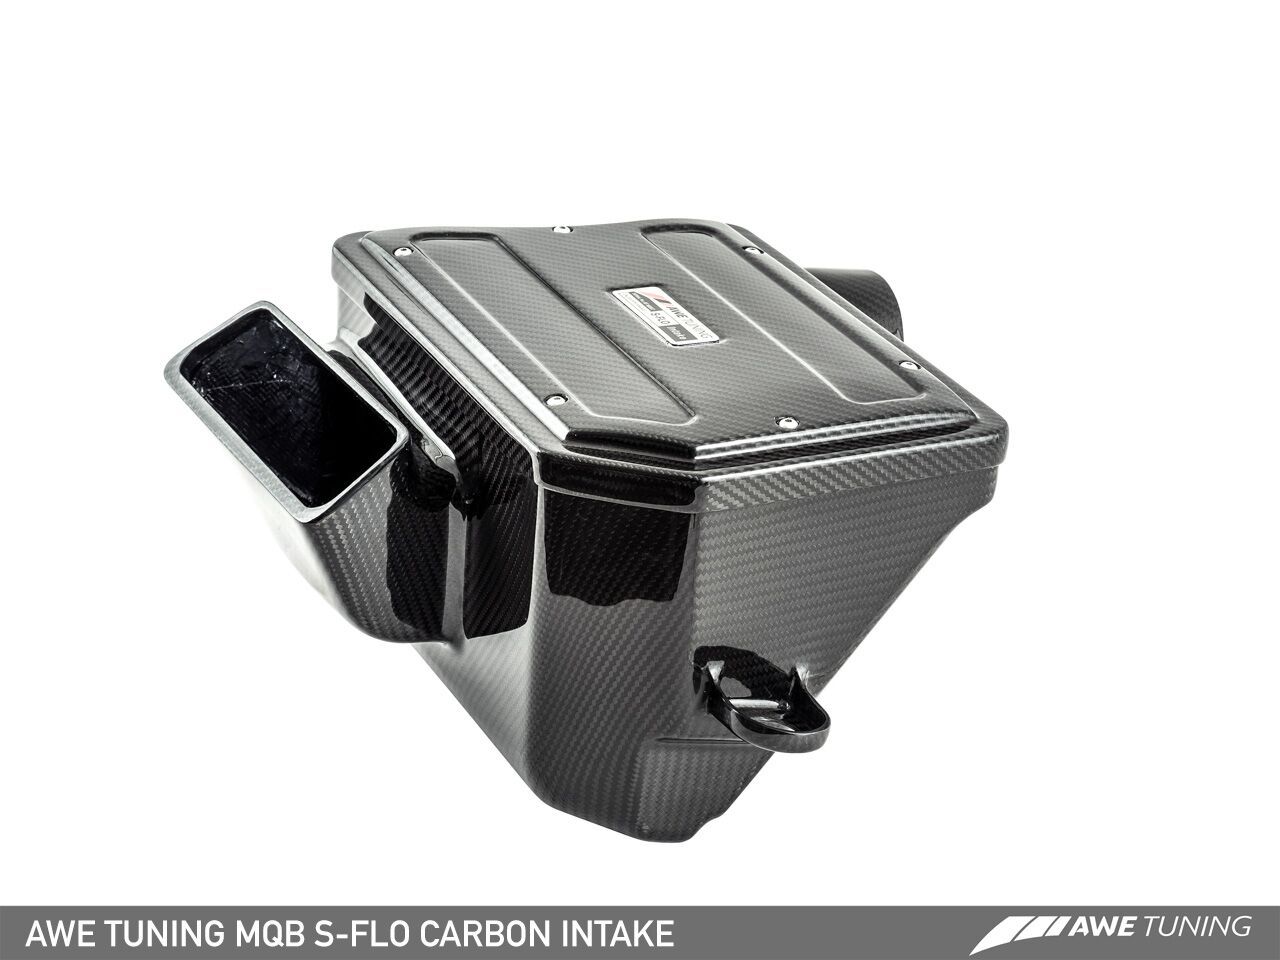 MQB Sflo carbon 5 AWE Now Able To Supply Advanced Carbon Fibre S FLO Intake Kit For MQB 1.8/2.0TFSI